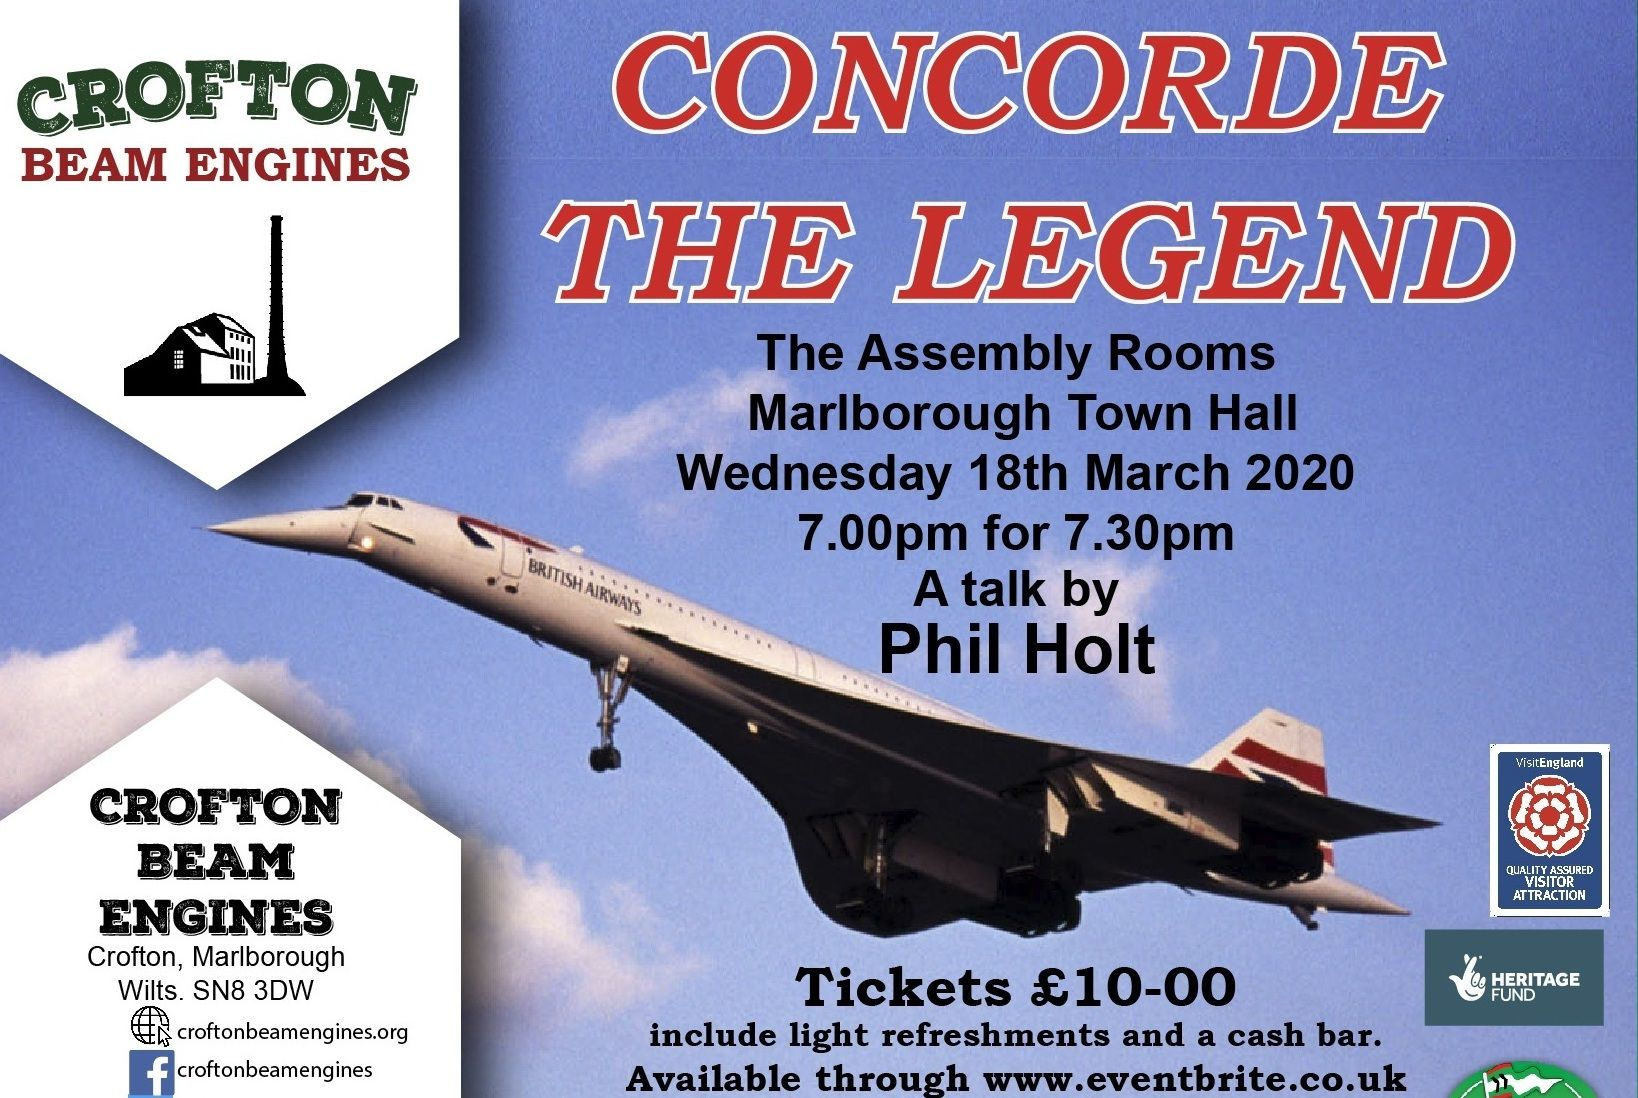 18 March - Concorde The Legend